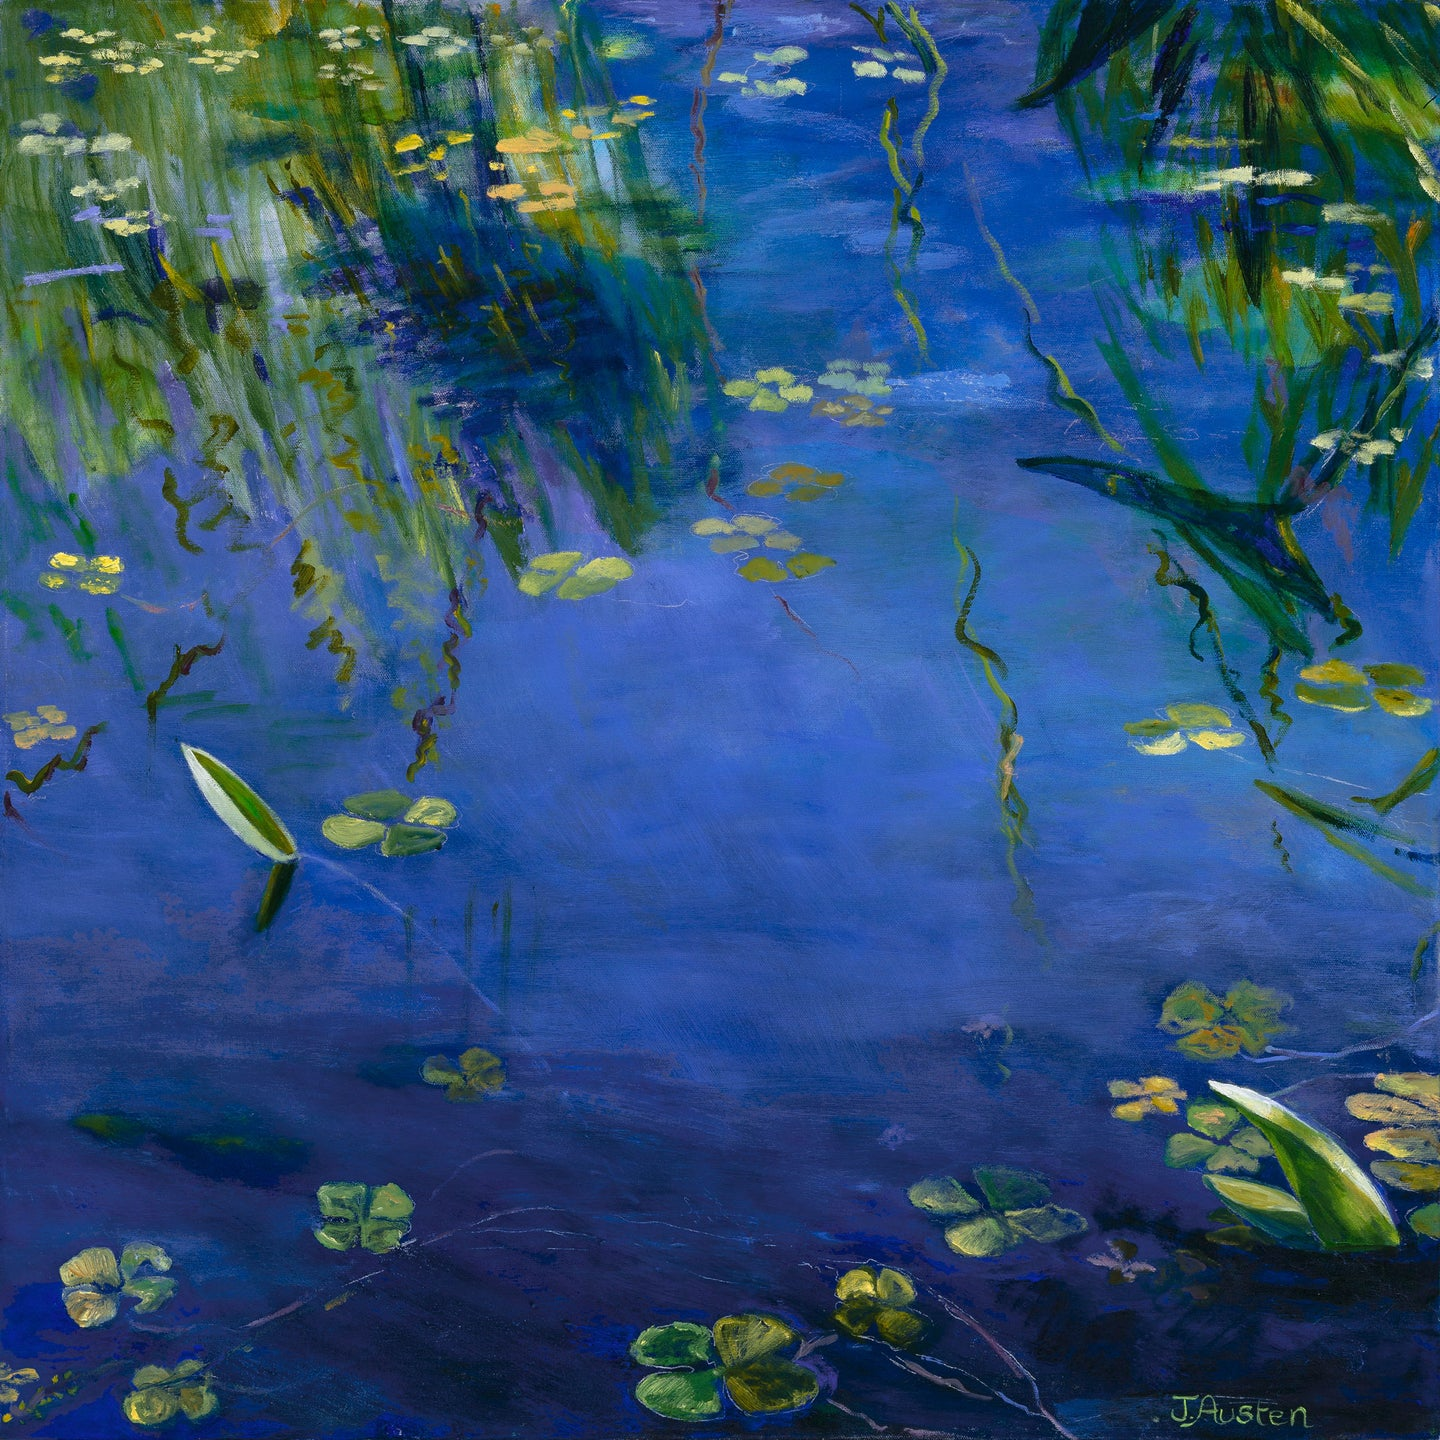 Water Lilies on Grass Reflections